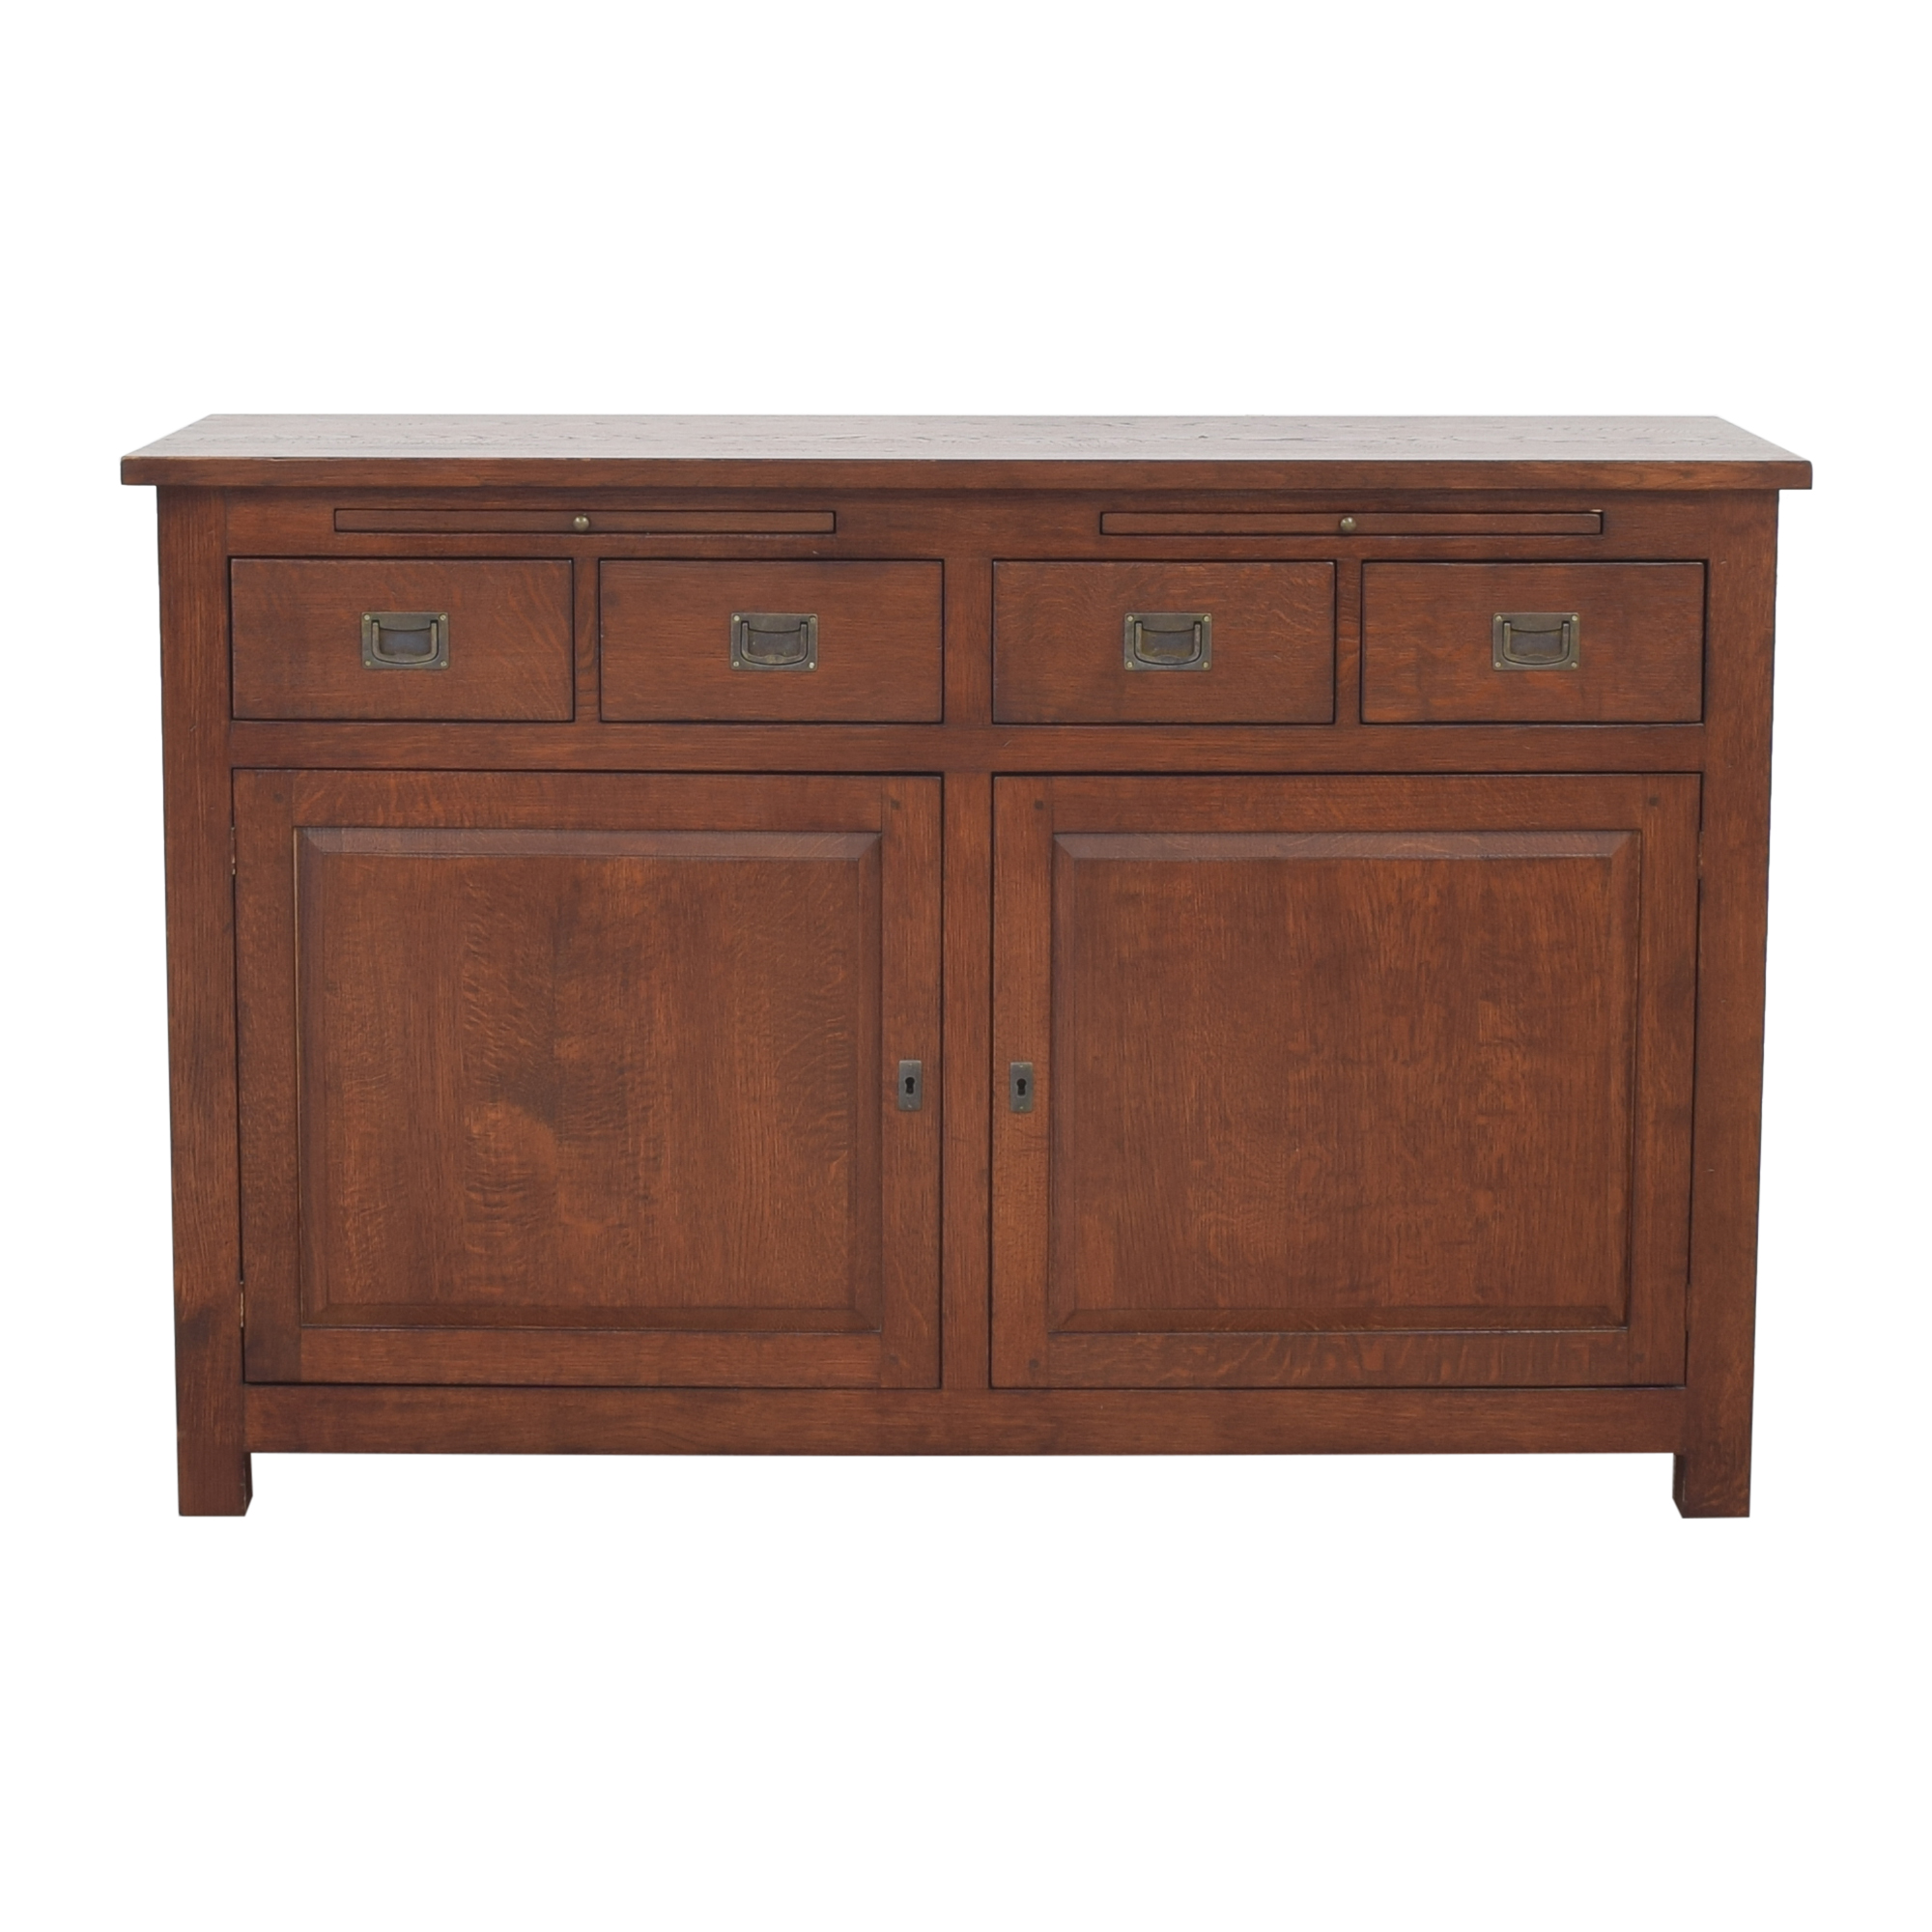 buy Crate & Barrel Bordeaux Sideboard Crate & Barrel